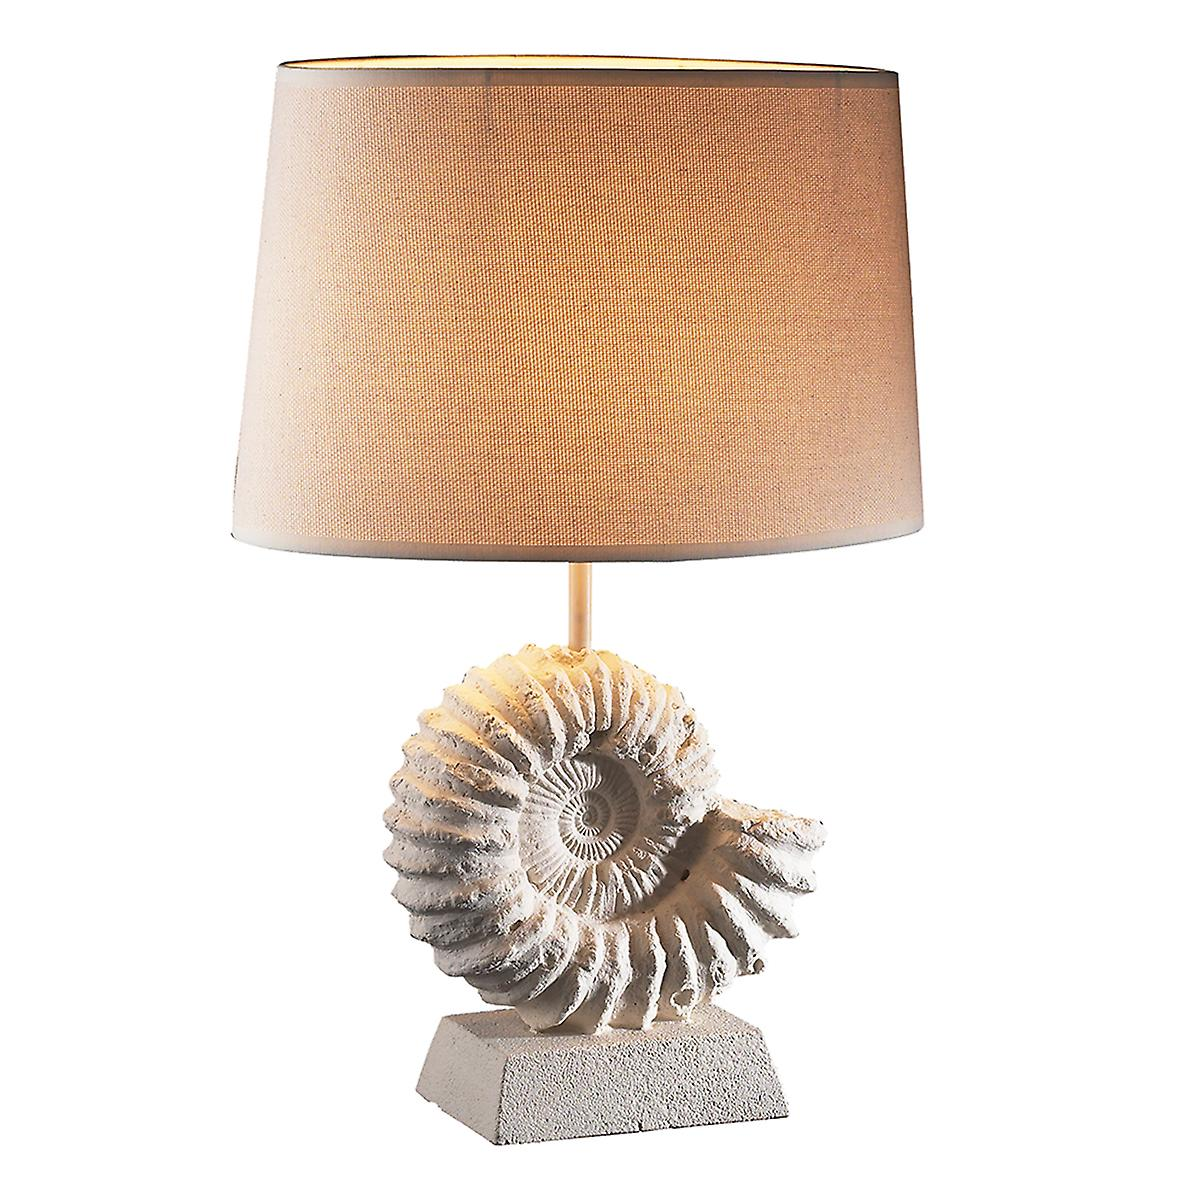 David Hunt AMM4334 Ammonite Stone Effect Table Lamp With Fine Hessian Shade